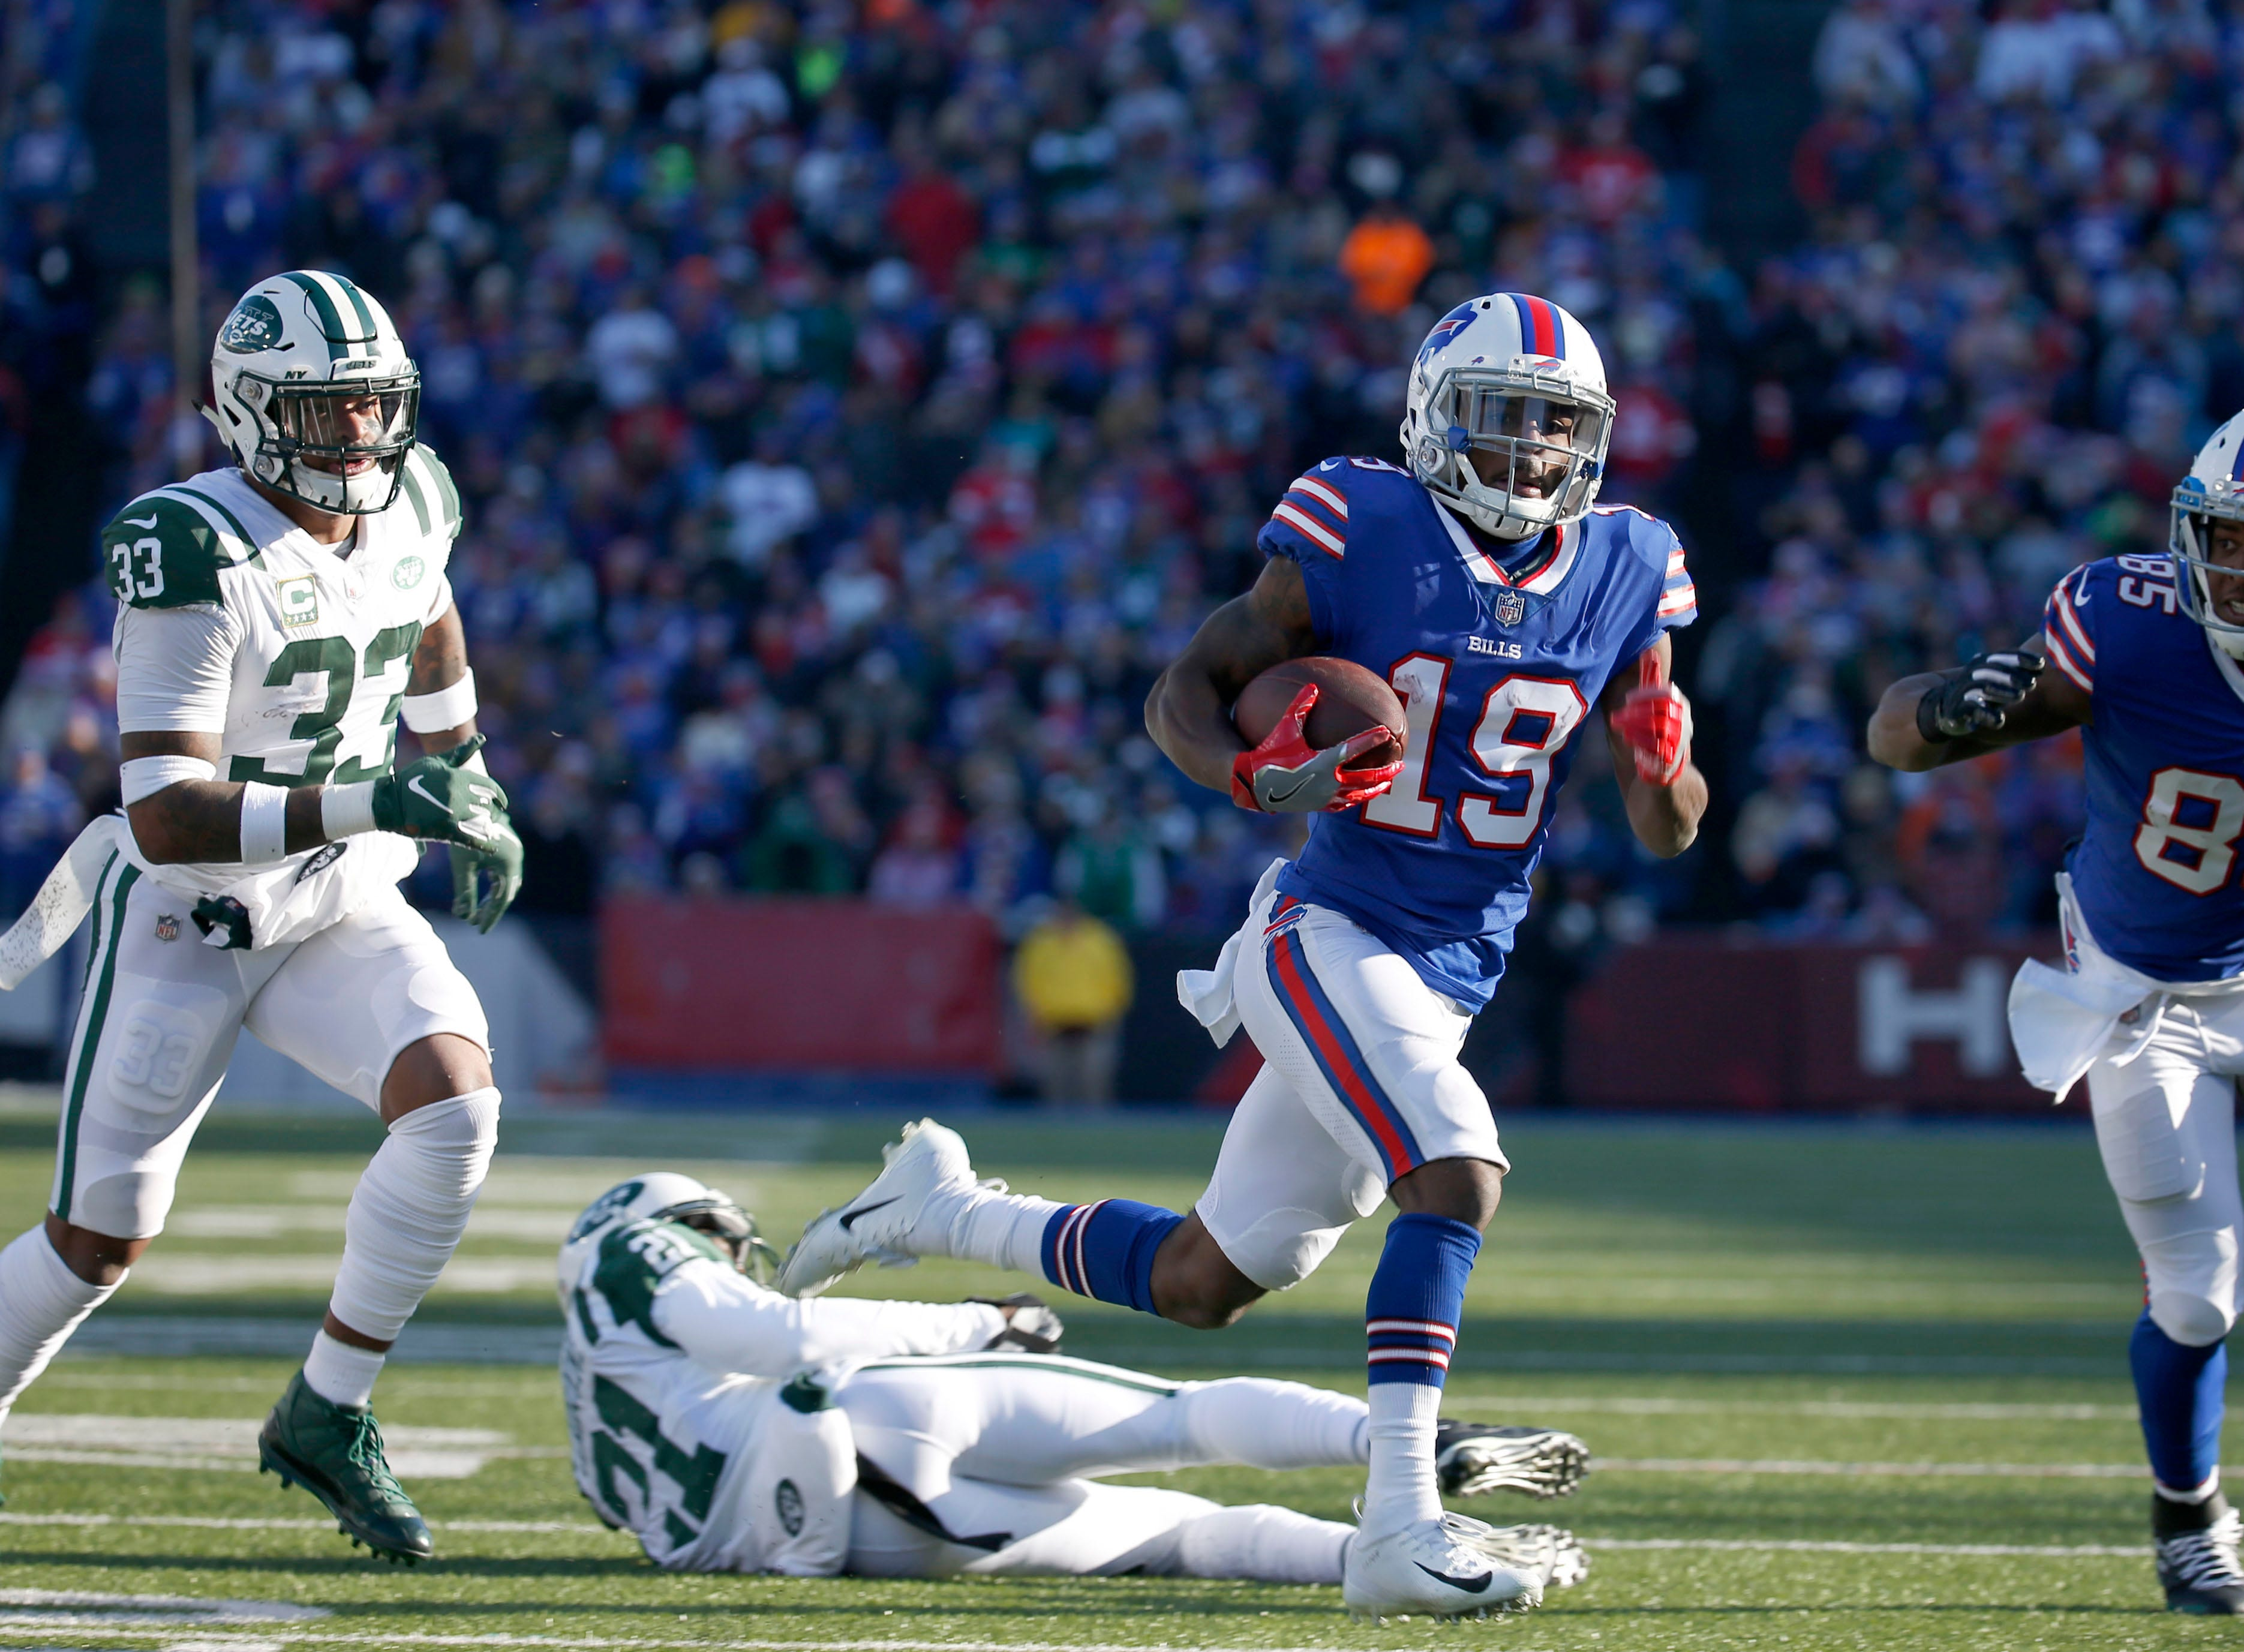 Dec 9, 2018; Orchard Park, NY, USA; New York Jets strong safety Jamal Adams (33) watches as Buffalo Bills wide receiver Isaiah McKenzie (19) runs the ball in for a touchdown during the first half at New Era Field. Mandatory Credit: Timothy T. Ludwig-USA TODAY Sports